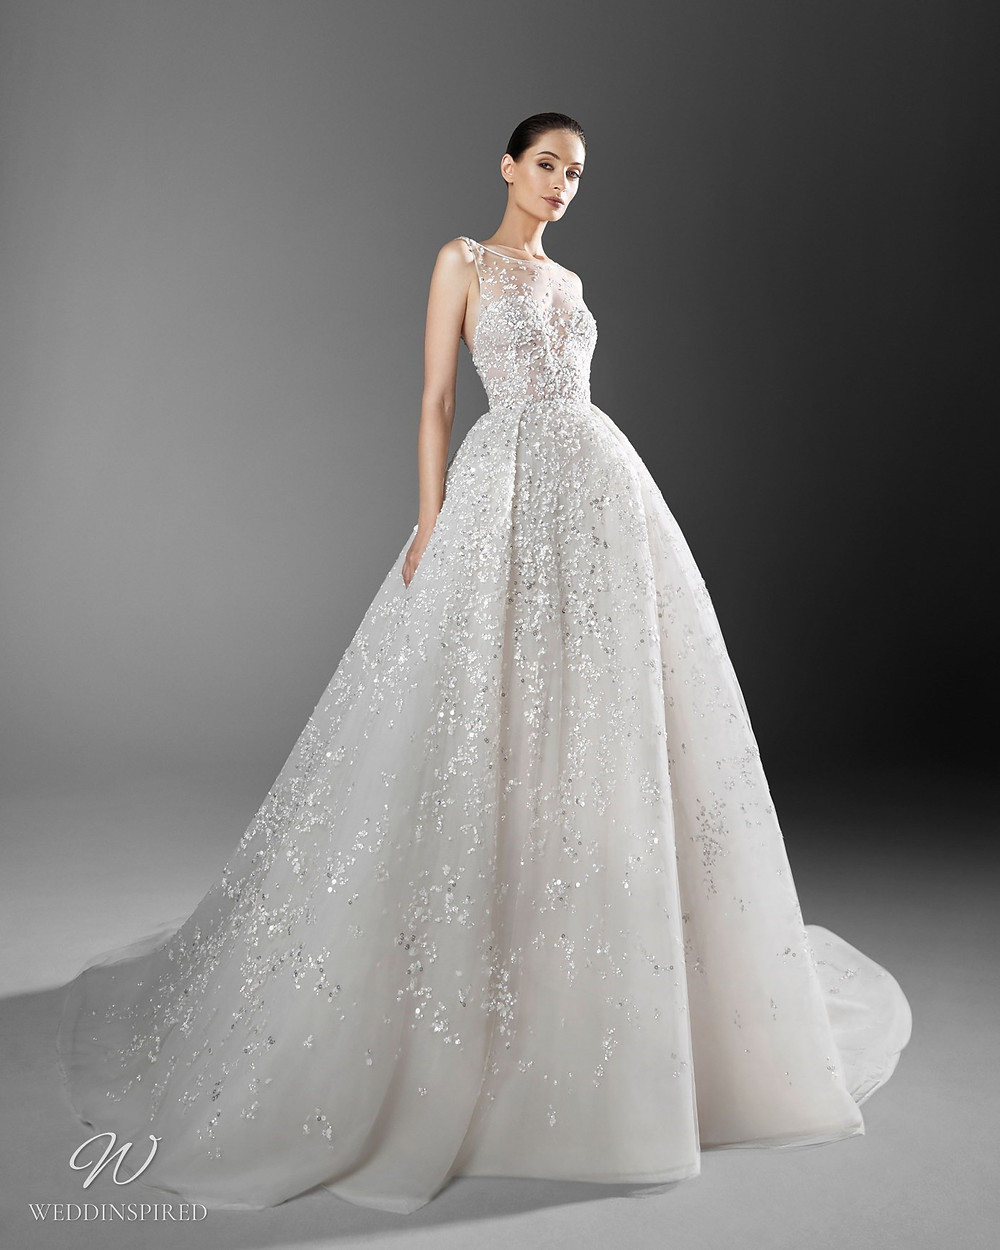 A Zuhair Murad sparkling crystal princess ball gown wedding dress with an illusion neckline